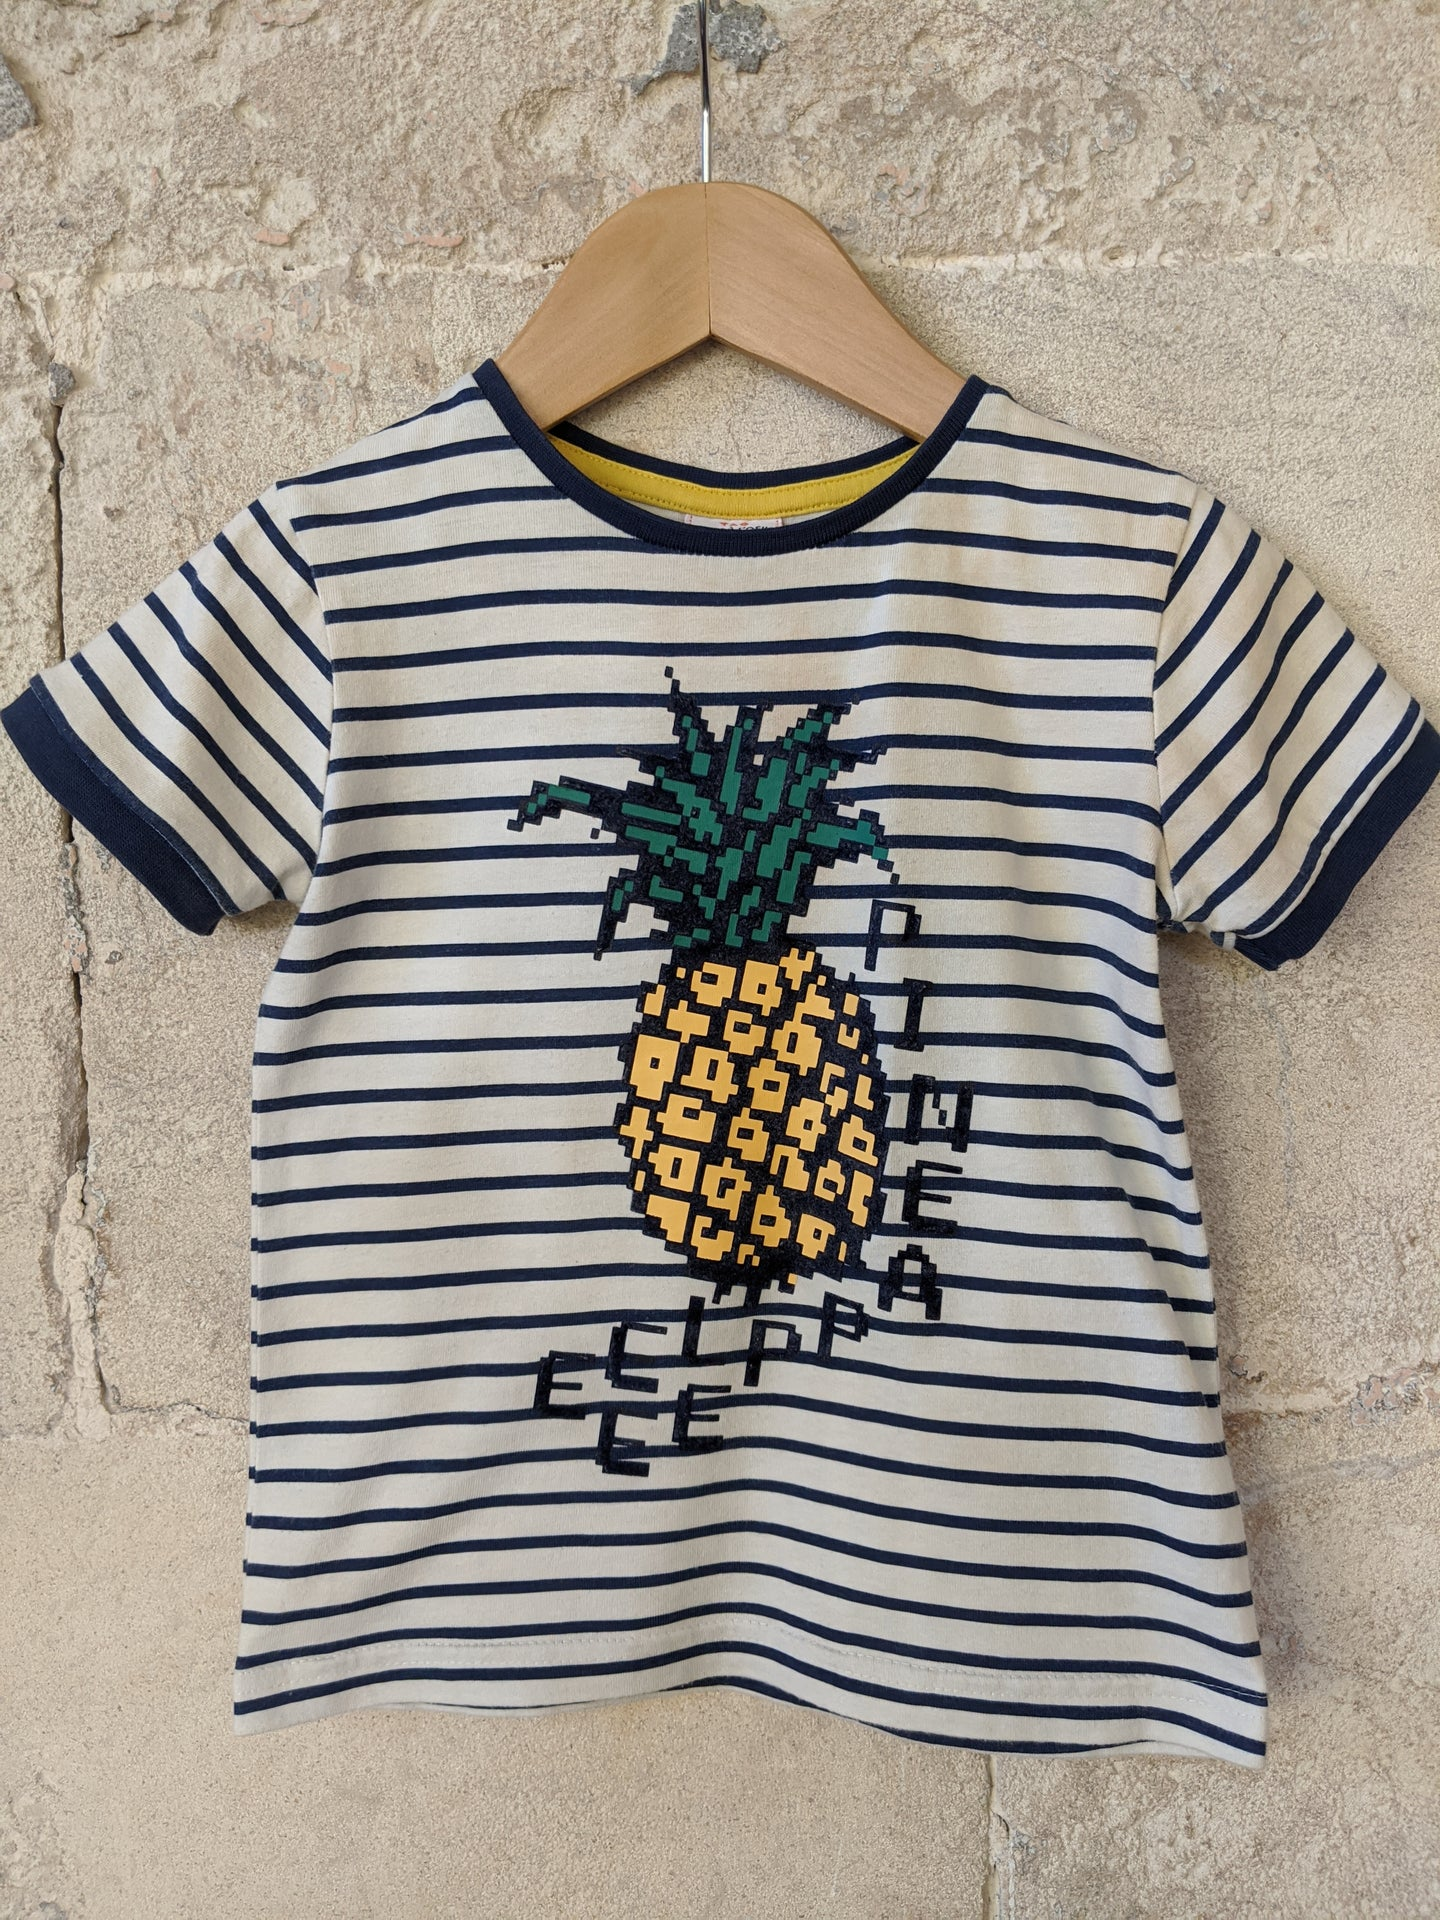 Cool Textured Pineapple Striped T Shirt 3 Years